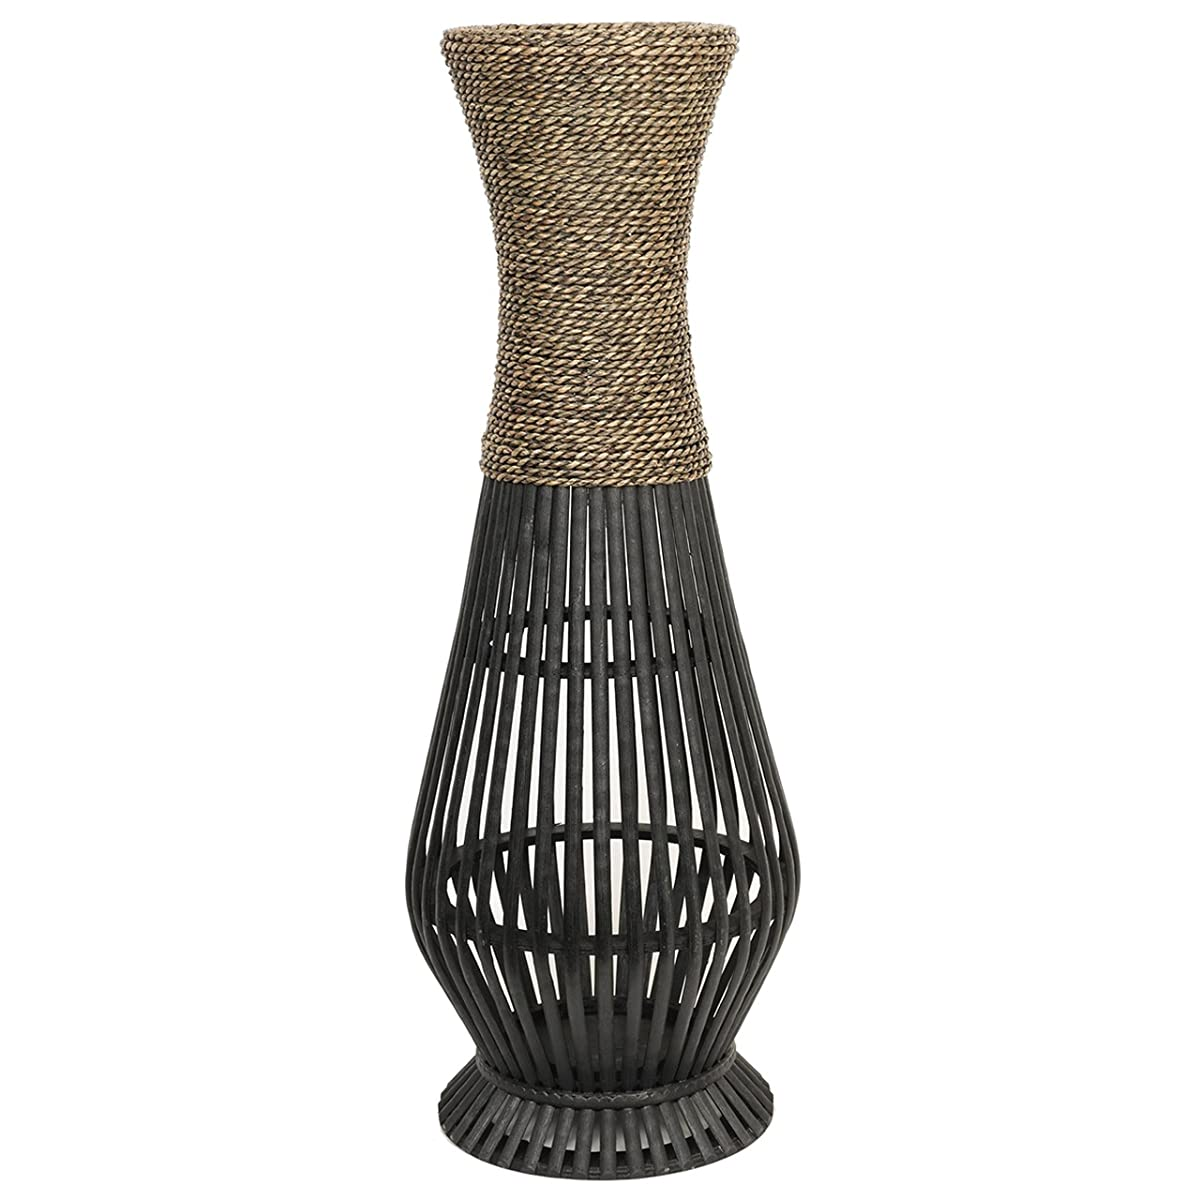 Bamboo Wood Tall floor Vase. Ideal Gift for home, office, spa, Reiki, organic/natural settings, wedding, dried floral arrangements